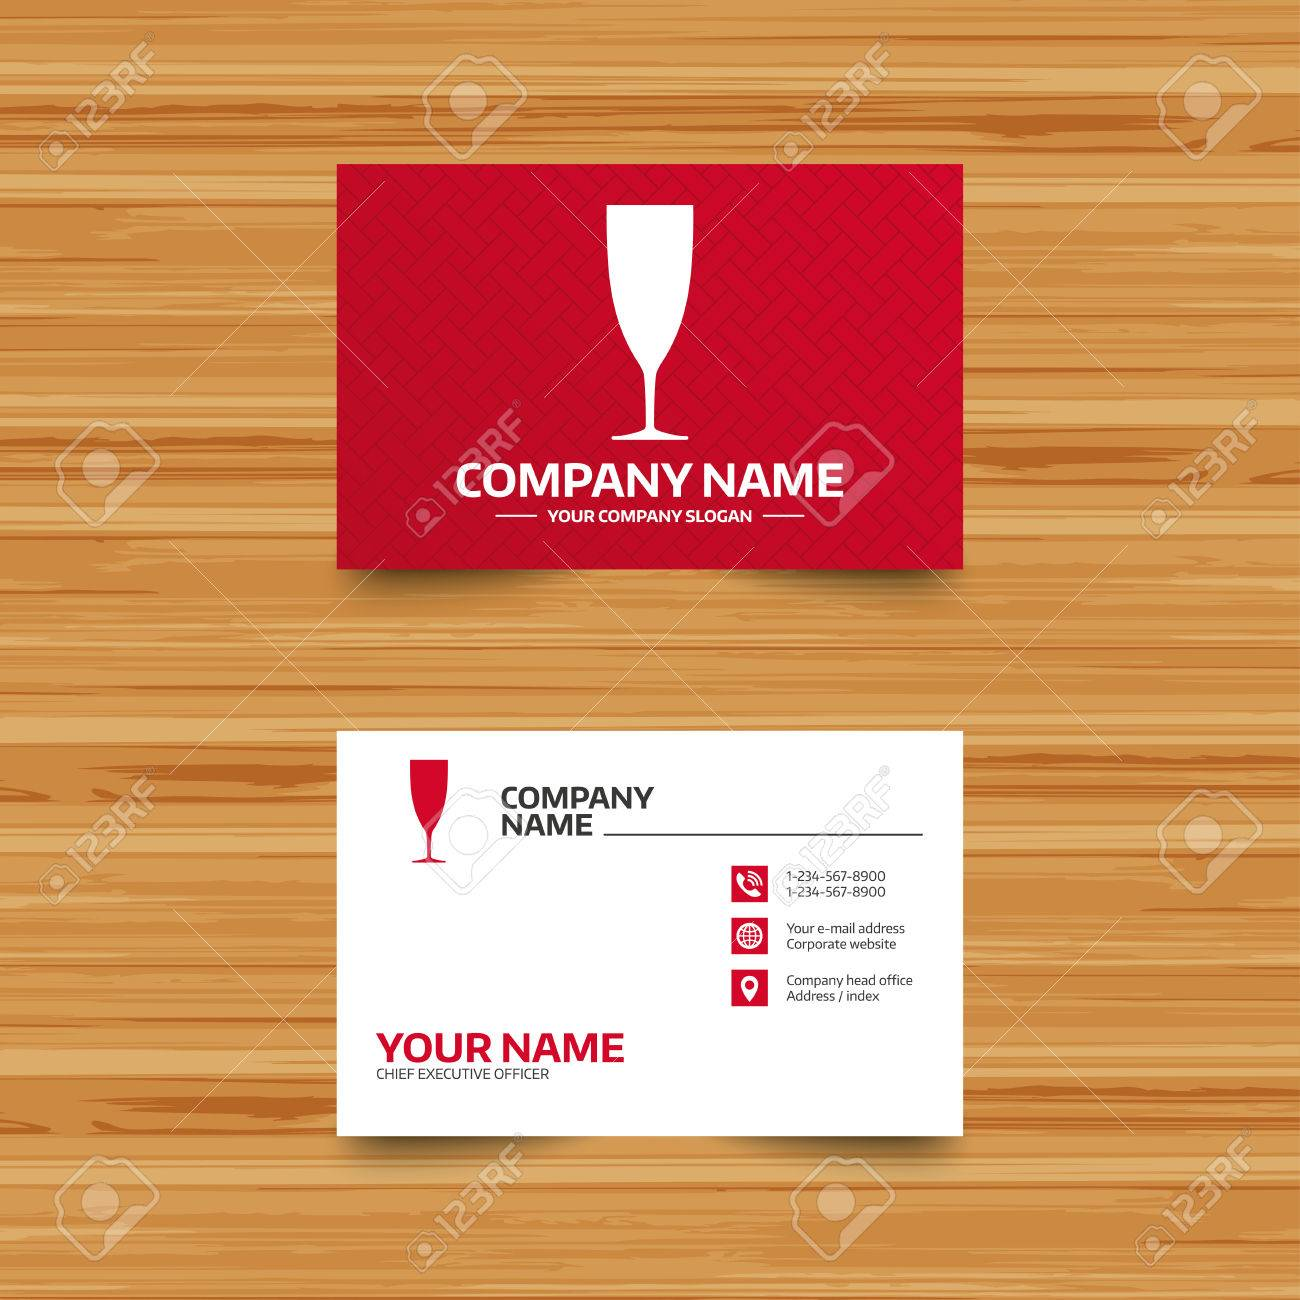 Handyman Business Cards Templates Free Gallery - Free Business Cards